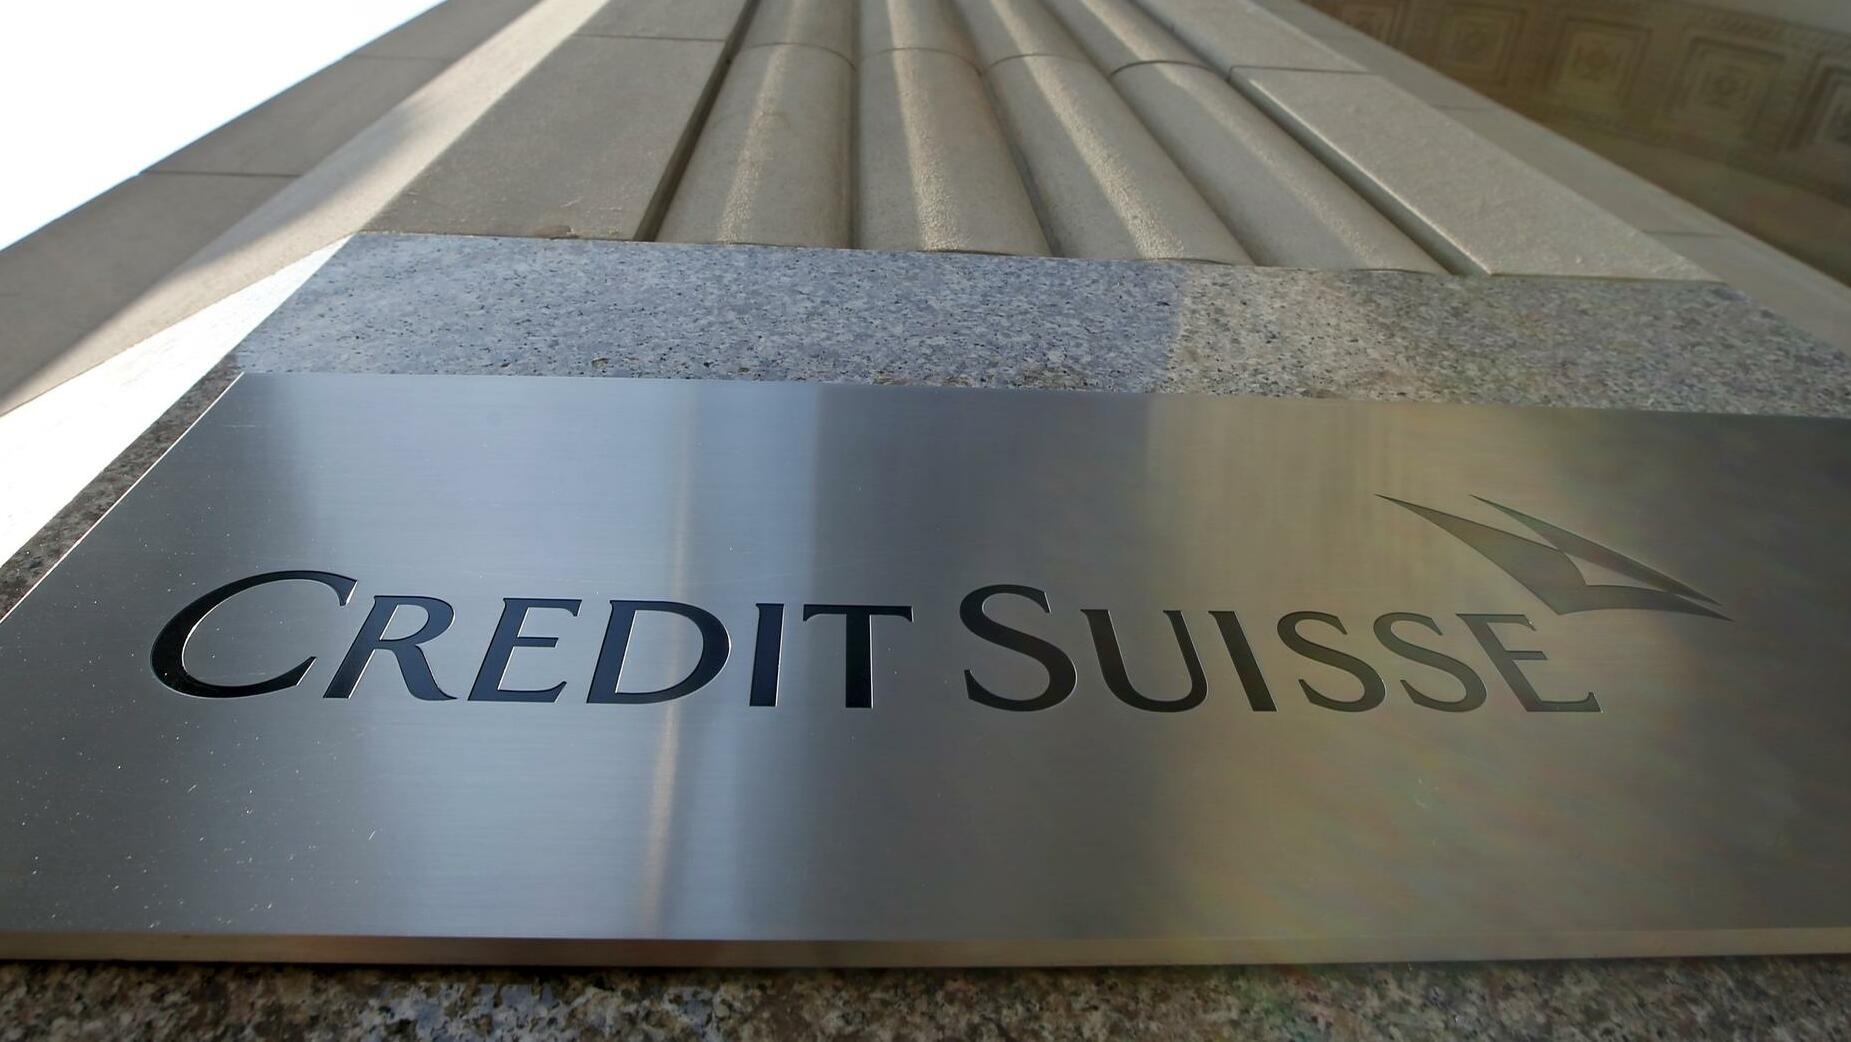 Credit Suisse Quelle: REUTERS